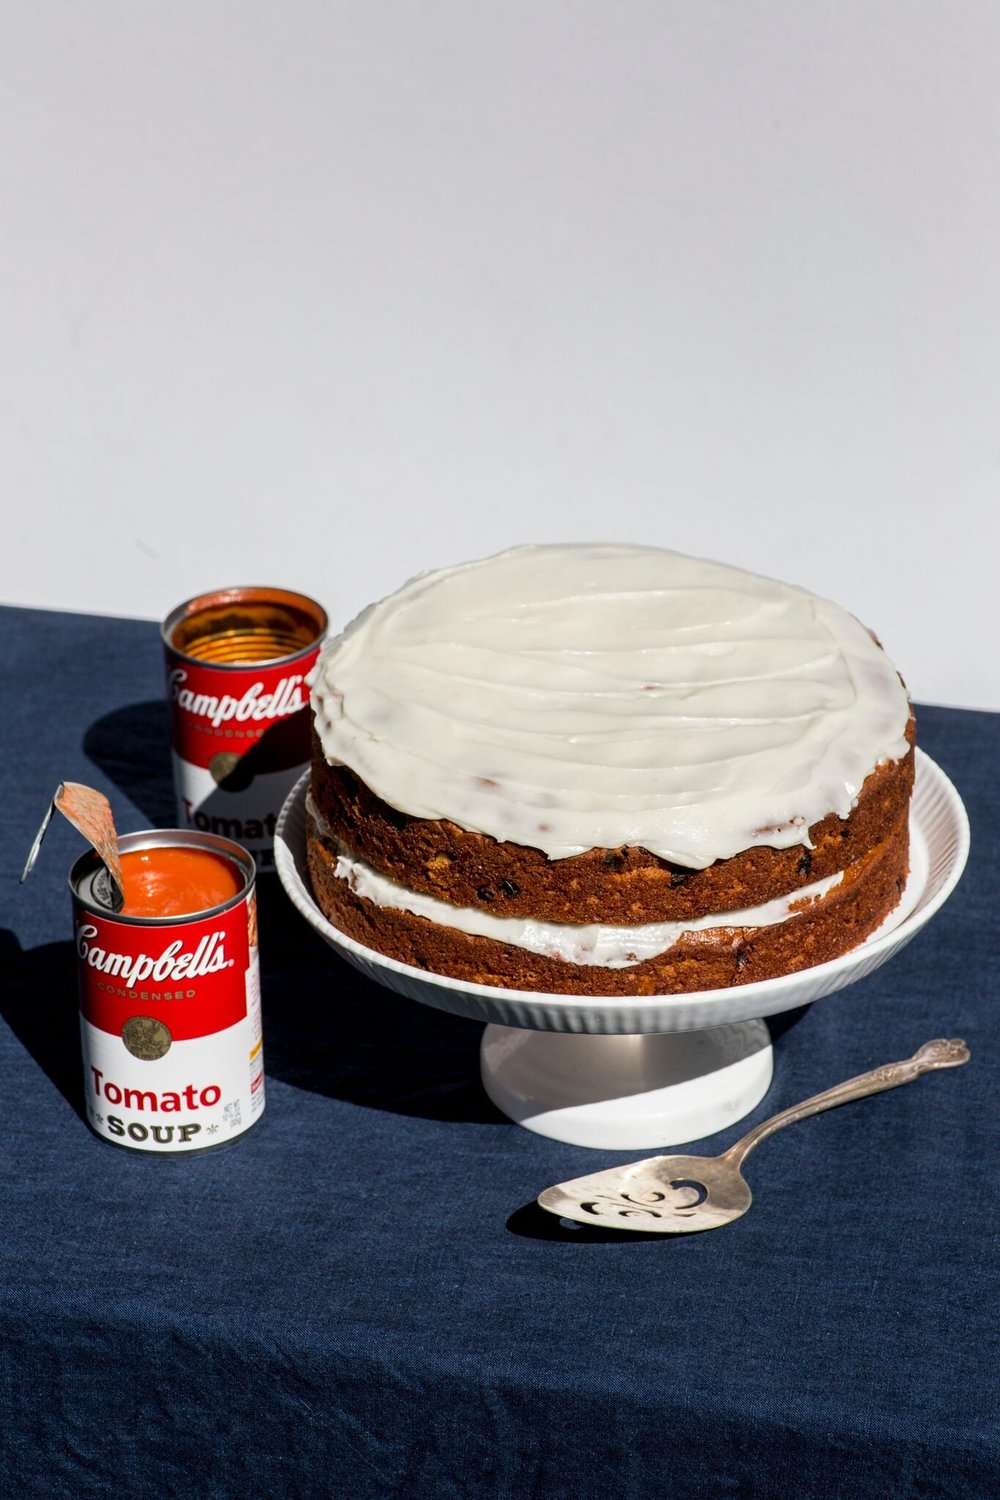 This recipe for tomato soup cake is a testament to the resilience of Depression-era Americans, and makes a delicious dessert to boot.